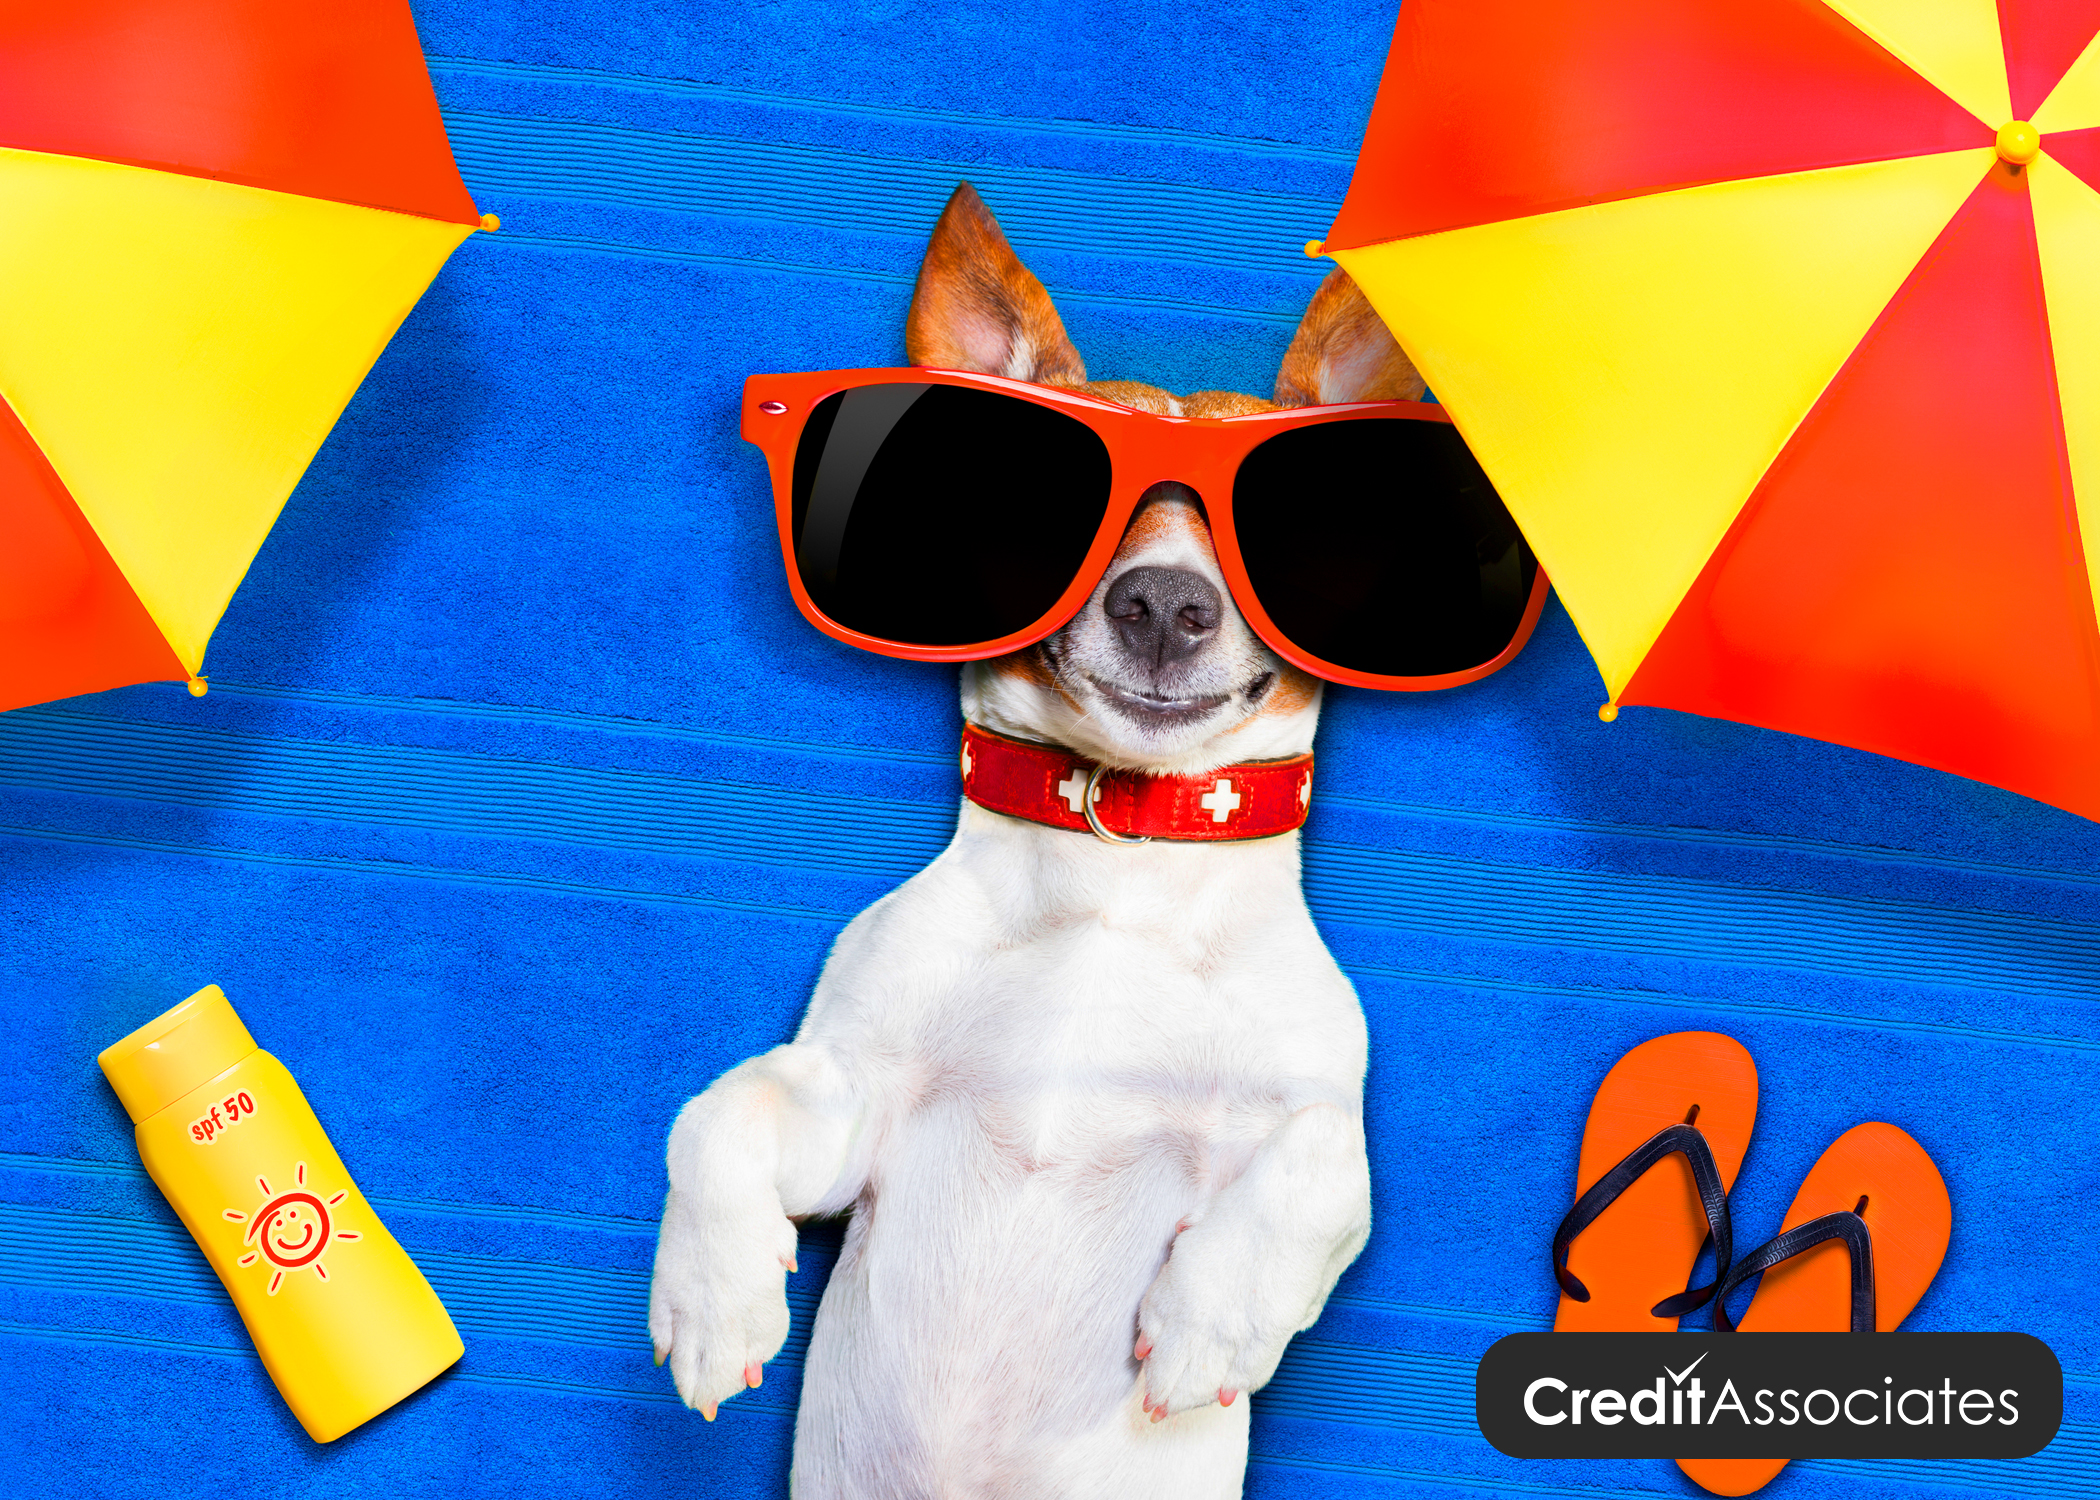 Keep Your Cool This Summer with These Thrifty Tips